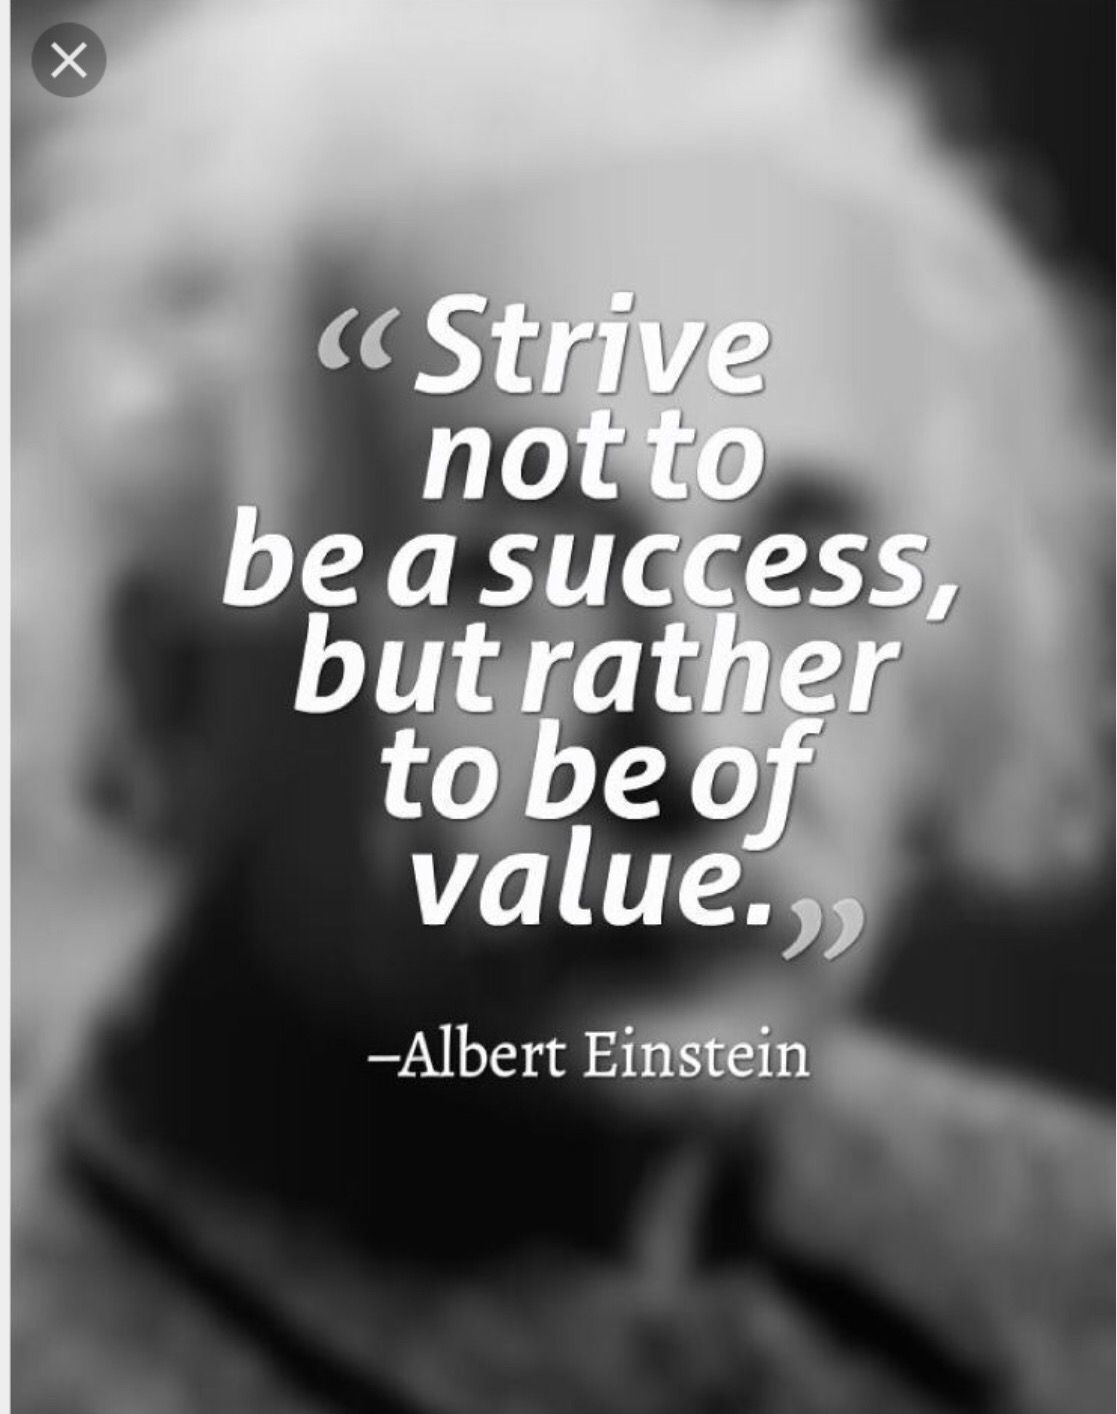 Inspirational Quotes Daily Albert Einstein  J U S T S A Y I N'  Pinterest  Albert Einstein